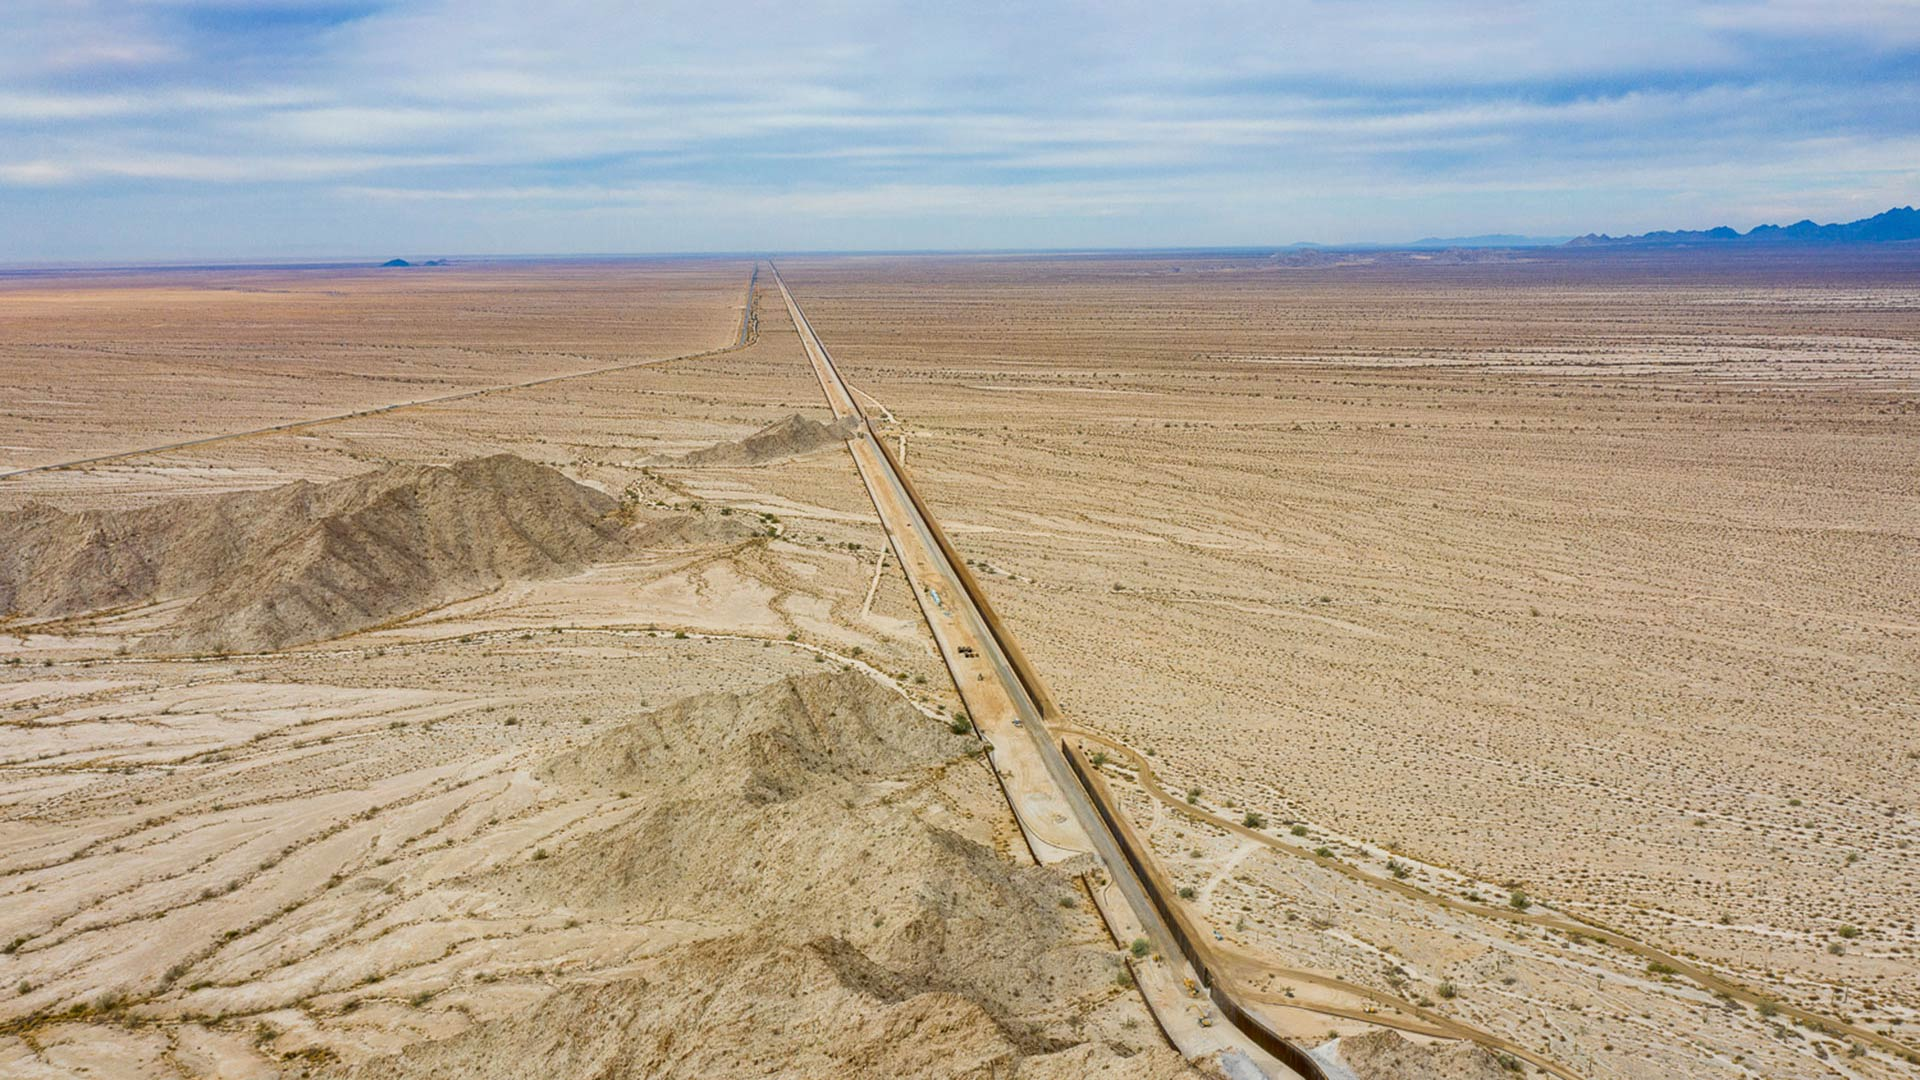 Aerial view of the border wall at the Tinajas Altas Mountains near Yuma, AZ.